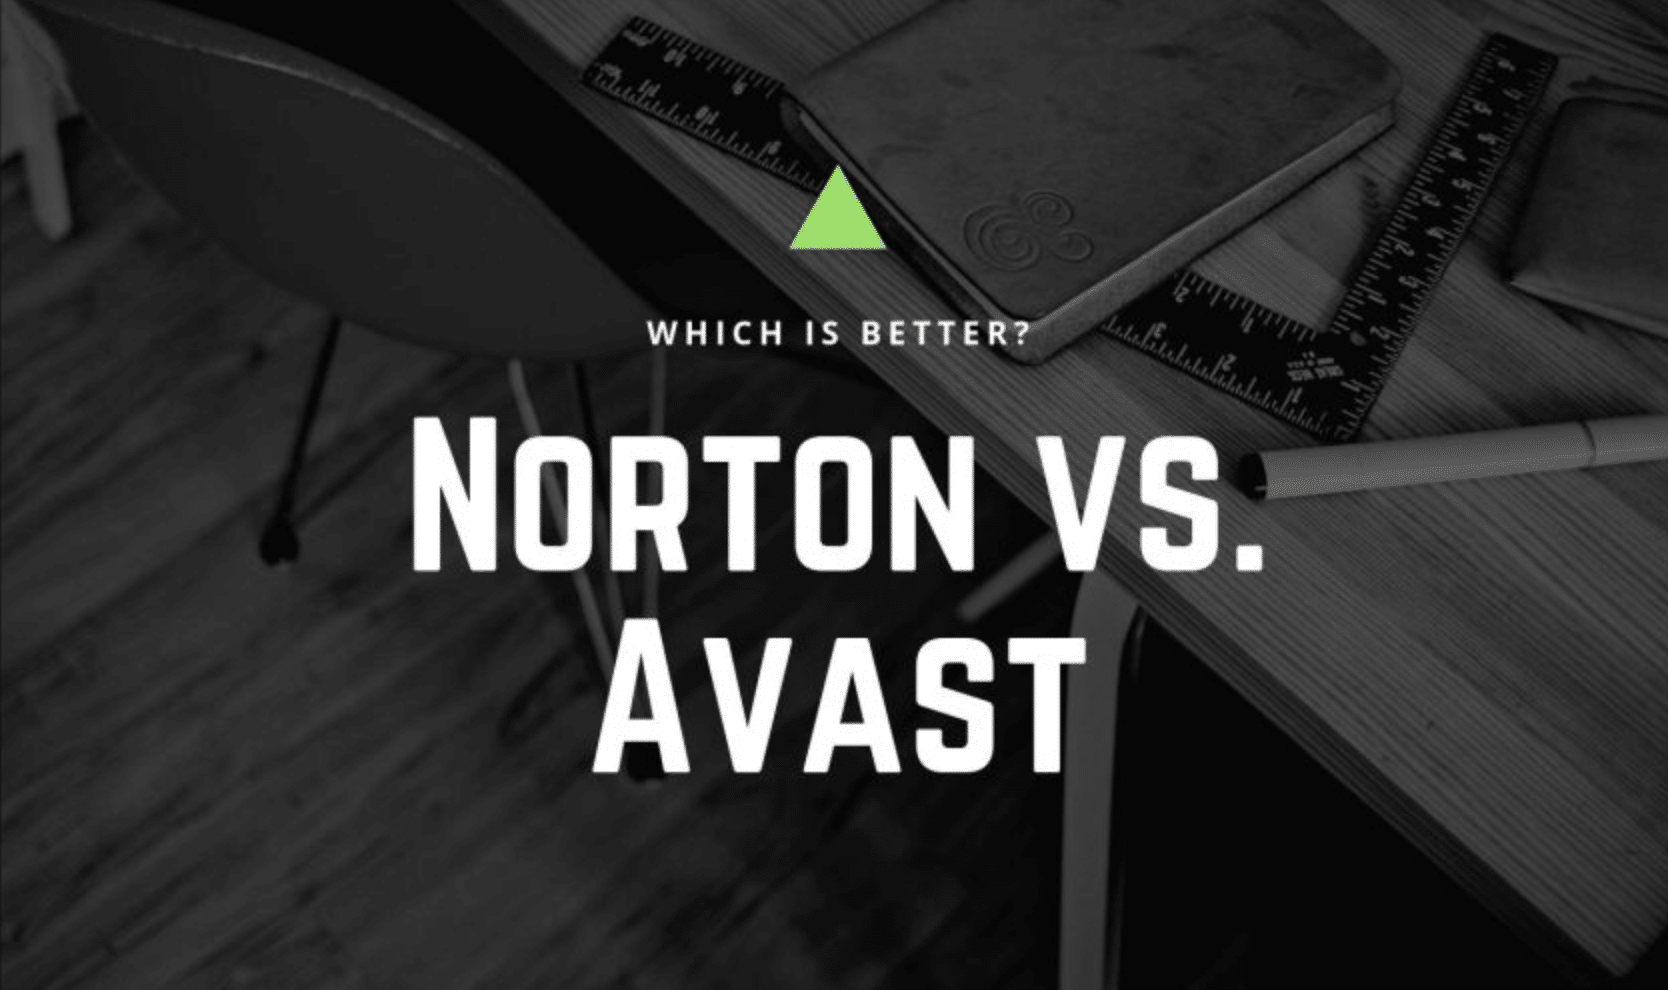 Norton vs Avast